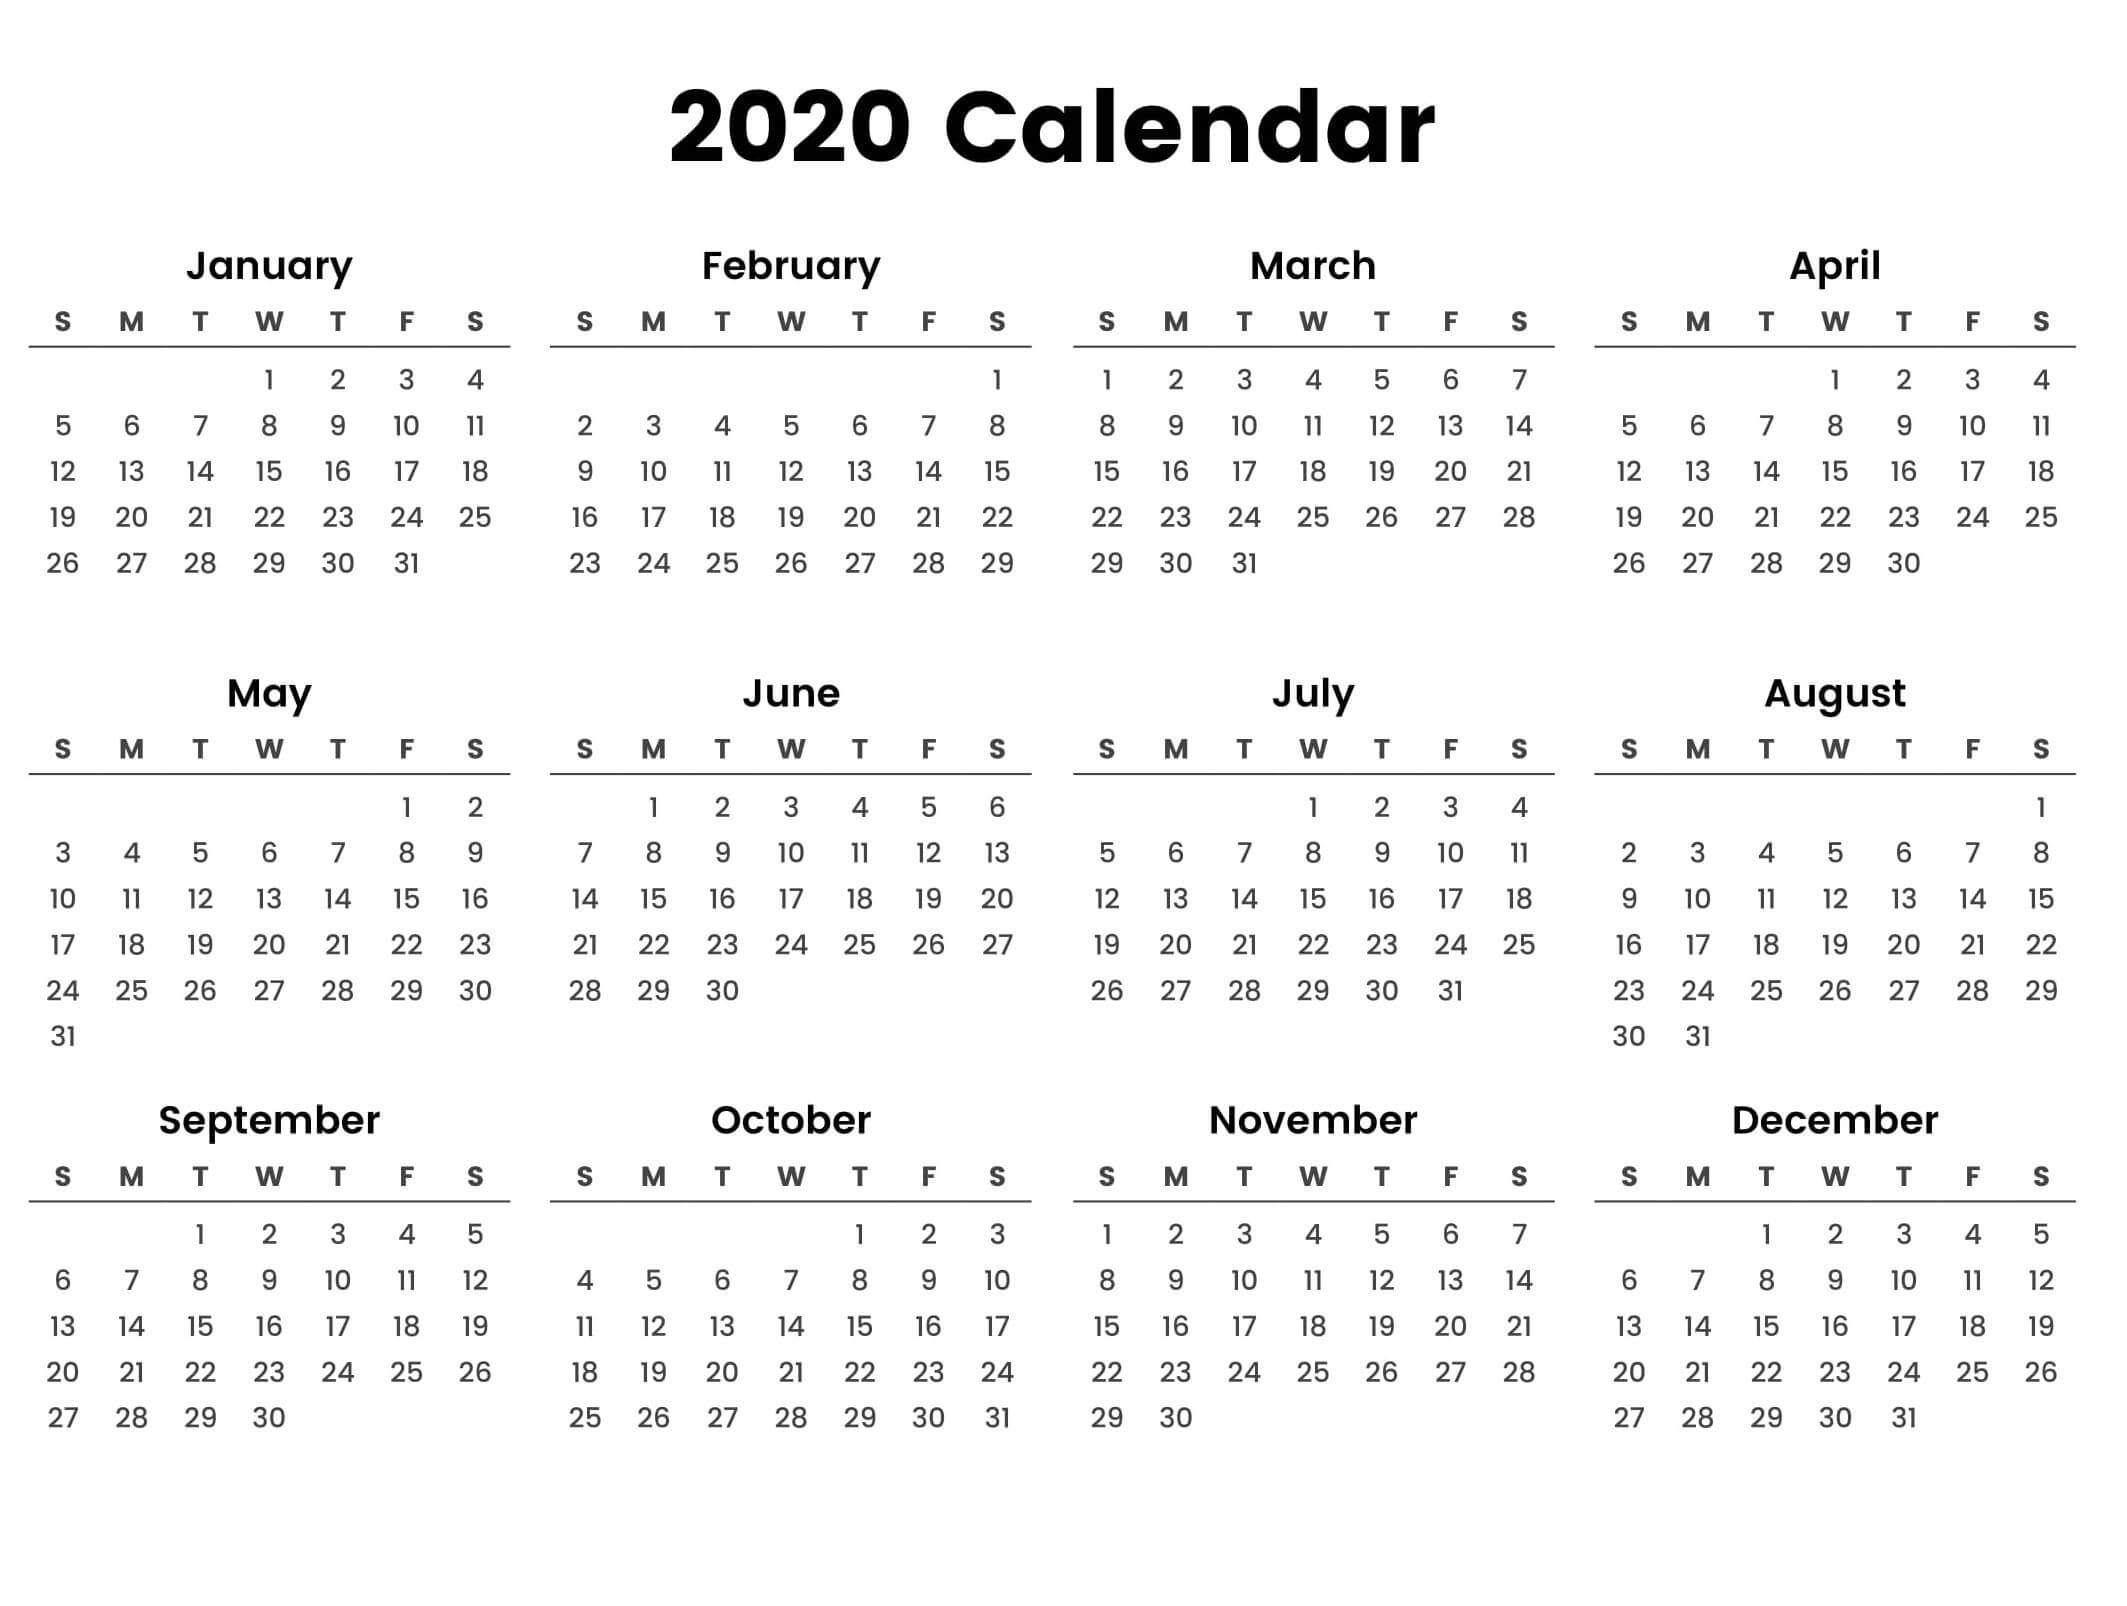 Large Yearly Calendar 2020 With Notes Pdf - Set Your Plan Impressive Free 2020 Calendar At A Glance